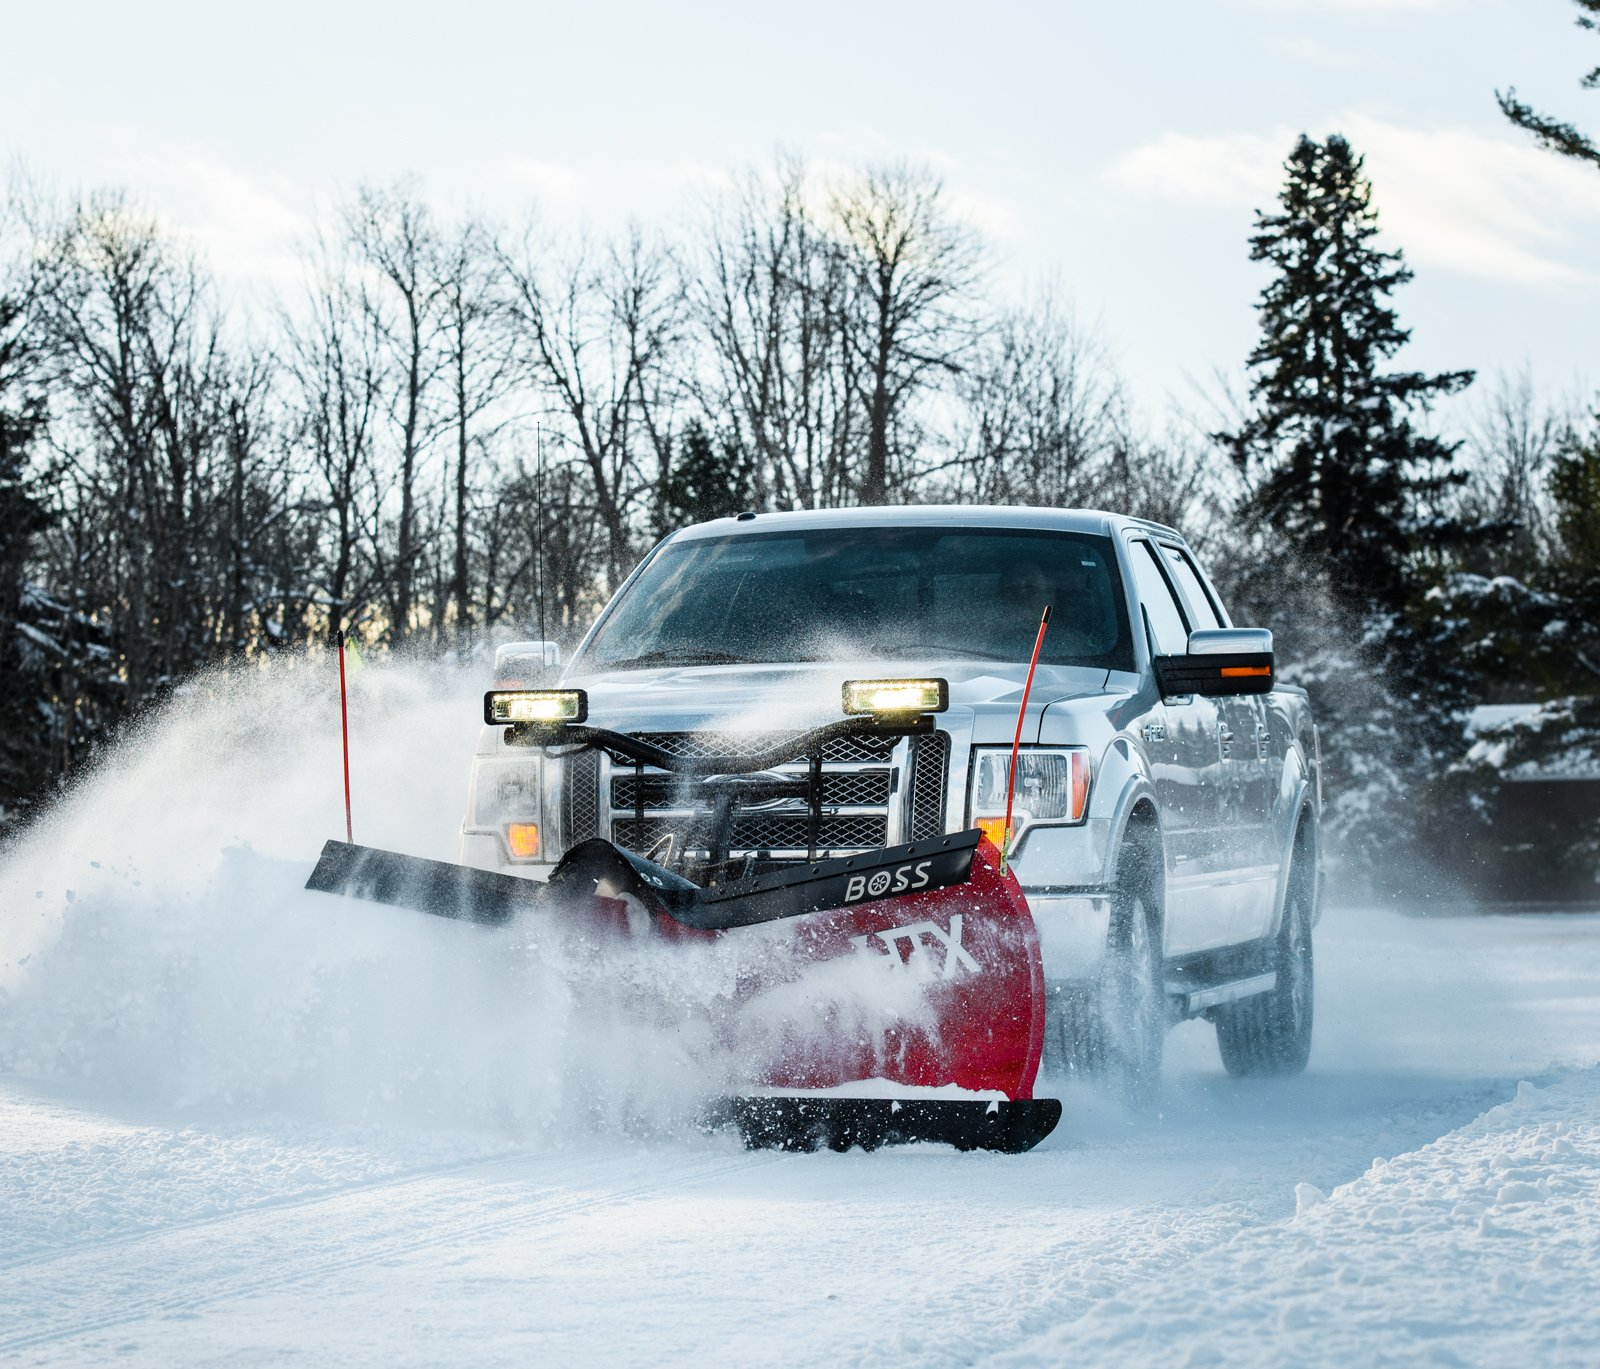 Licensed and Insured snow removal truck